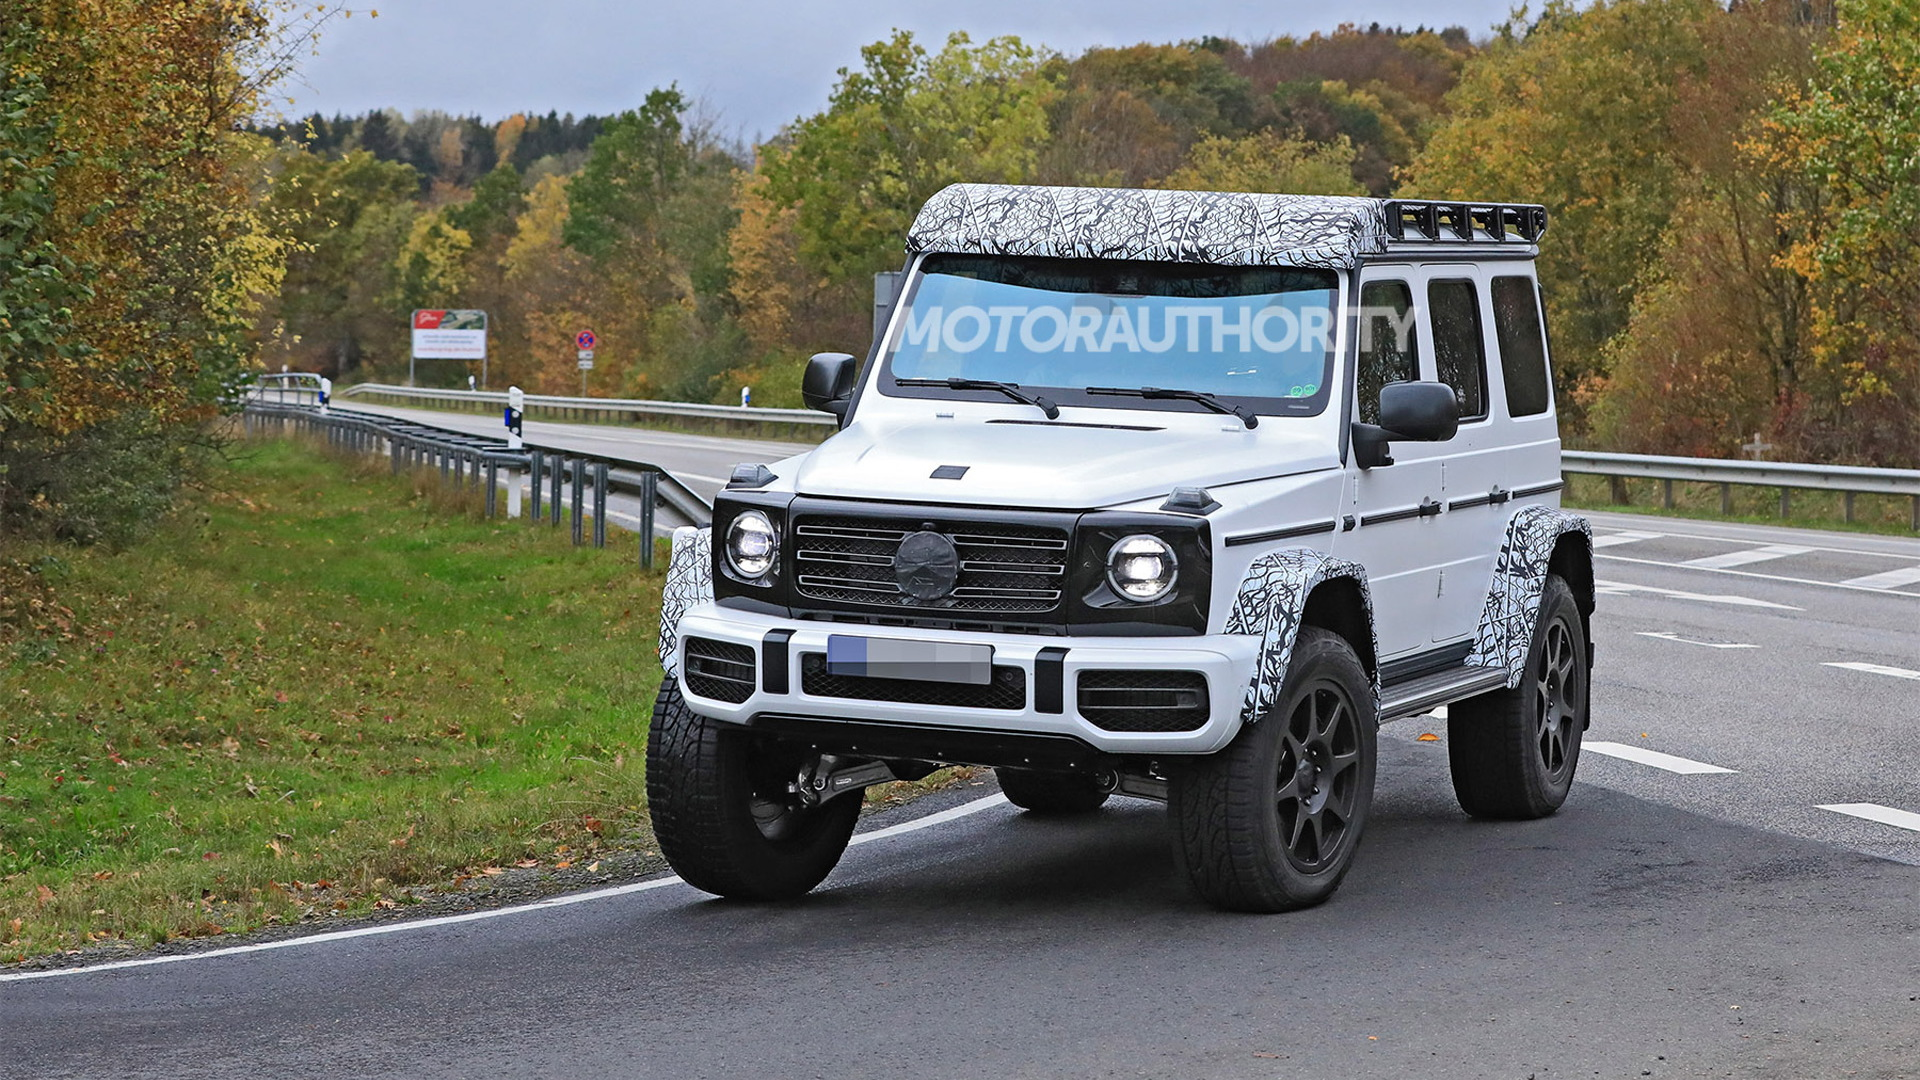 2022 Mercedes-Benz G550 4x4 Squared spy shots - Photo credit: S. Baldauf/SB-Medien